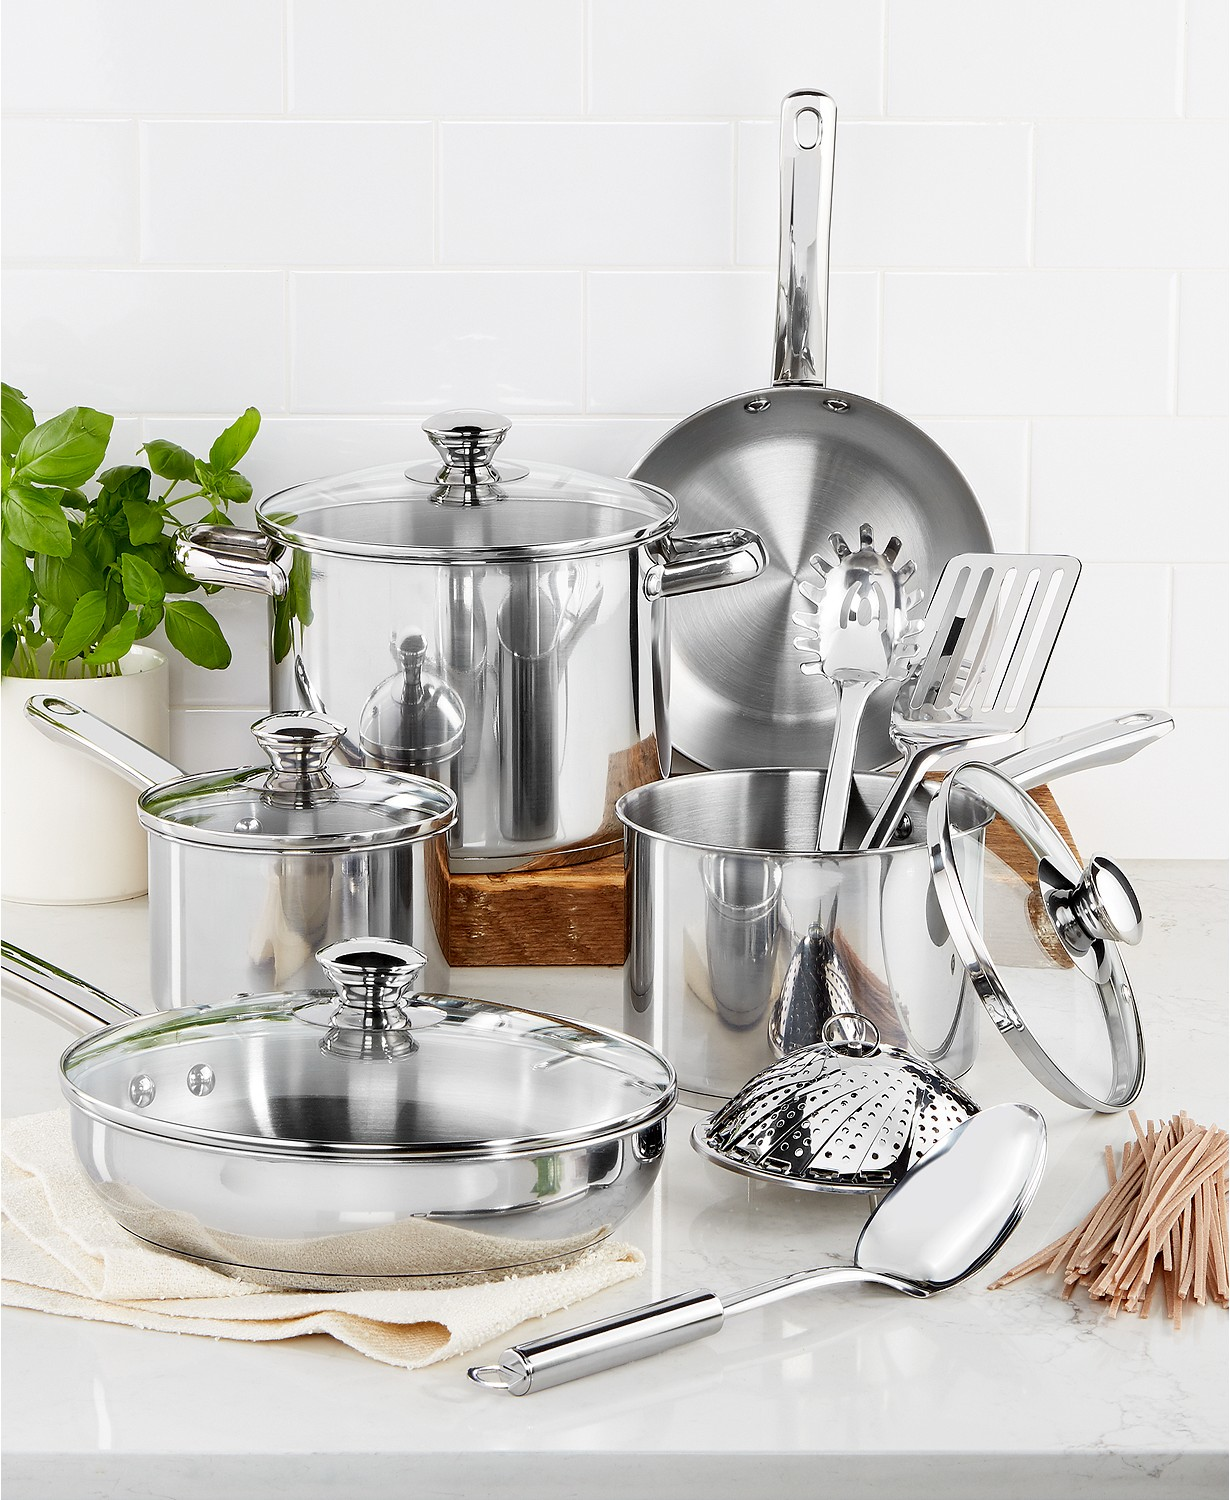 Stainless Steel 13-Pc. Cookware Set Only $29.99 (Was $119.99)